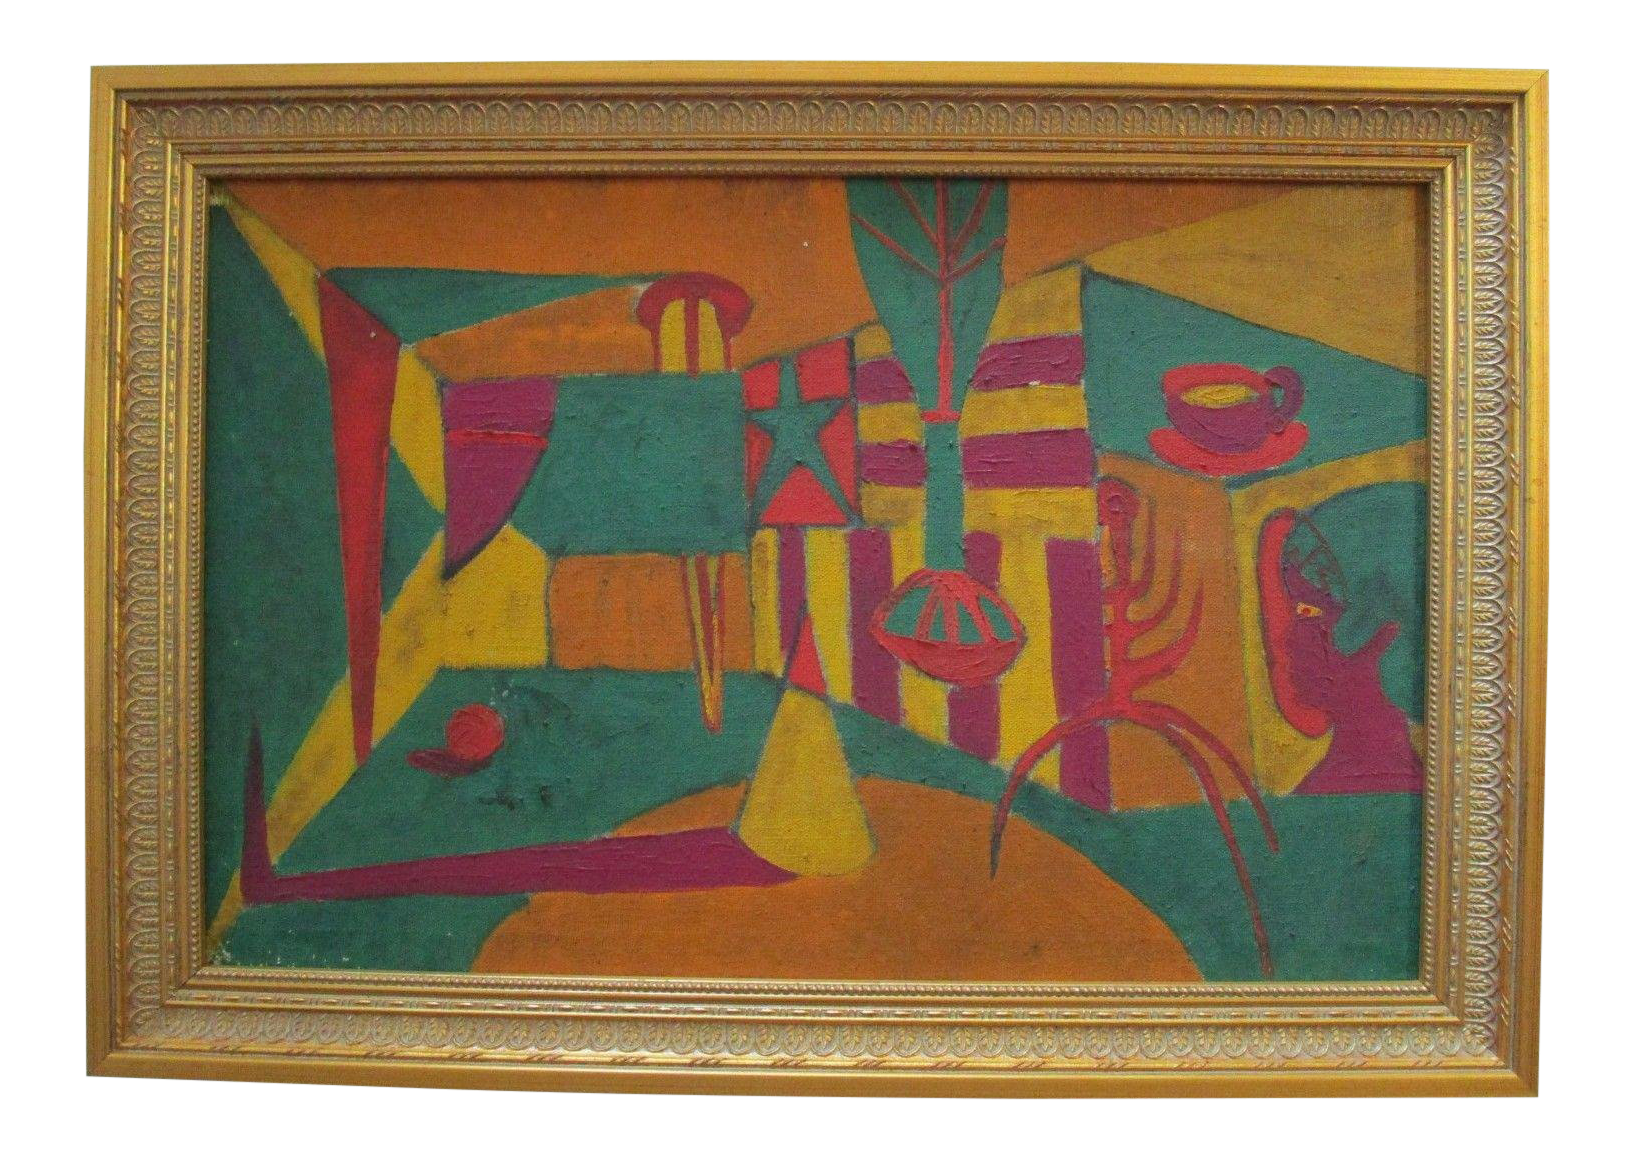 Cubism drawing vase. William brun painting psychedelic